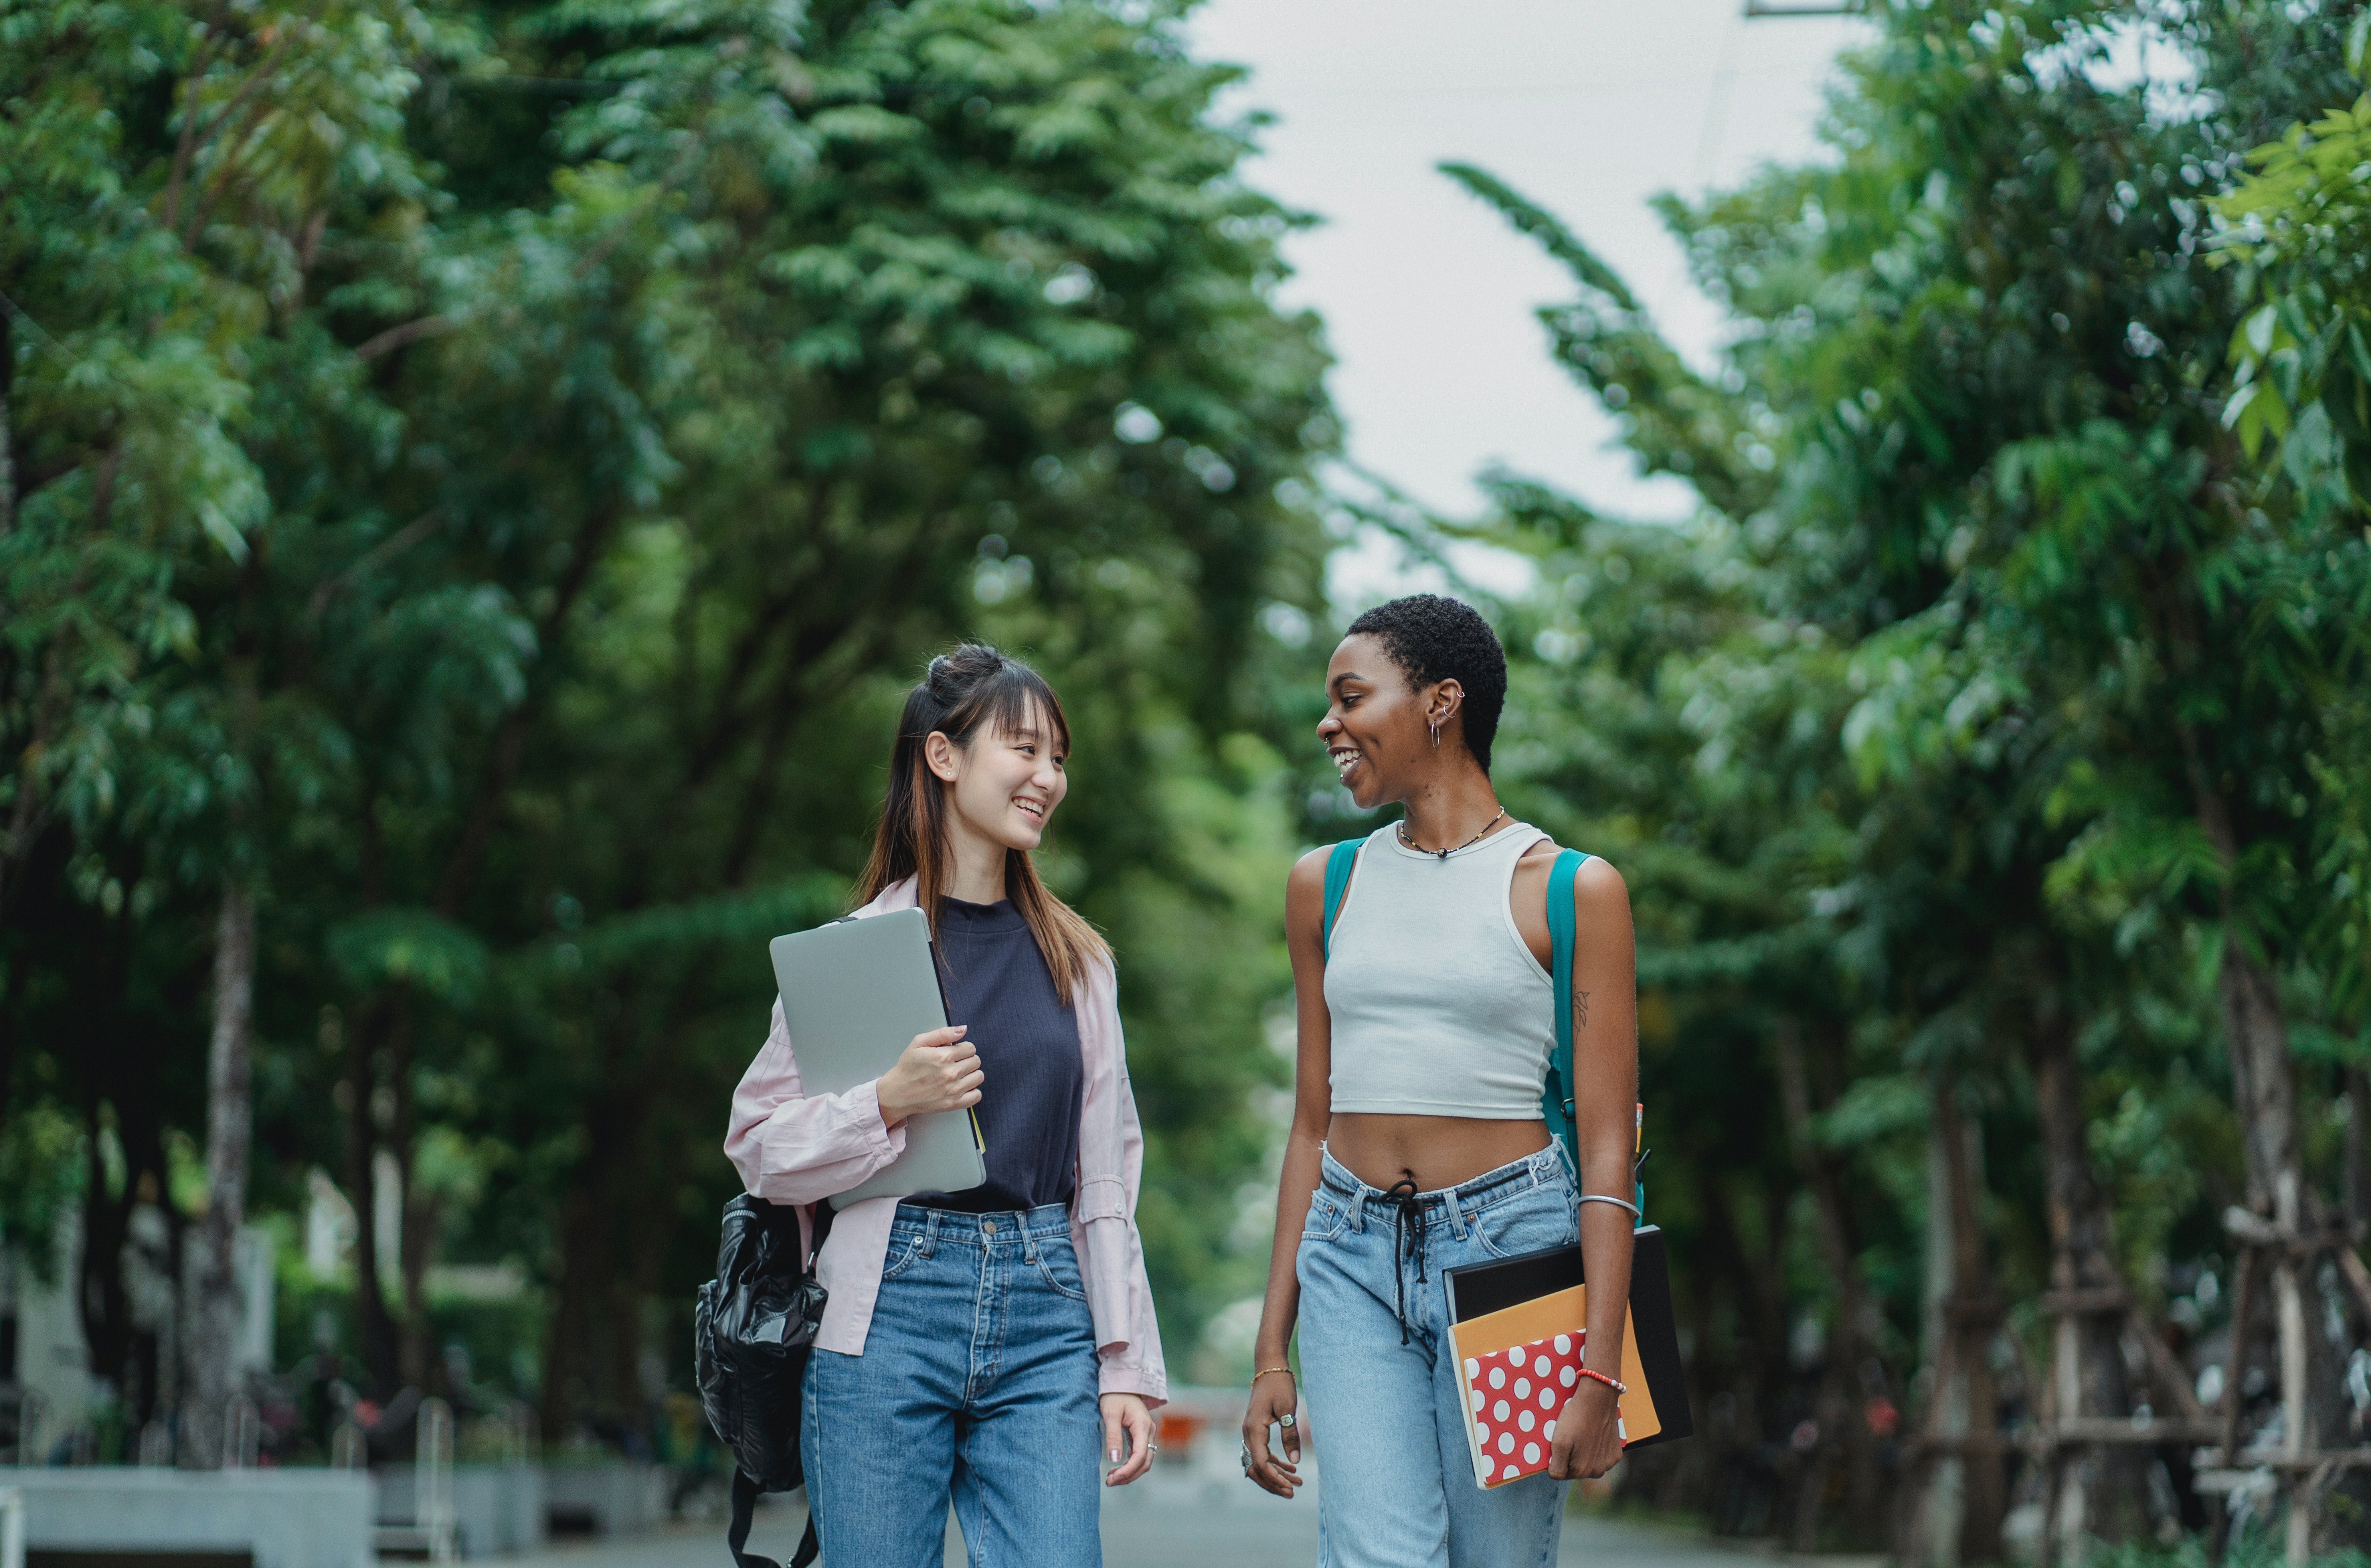 Talking Transfer: How to engage transfer students of different backgrounds